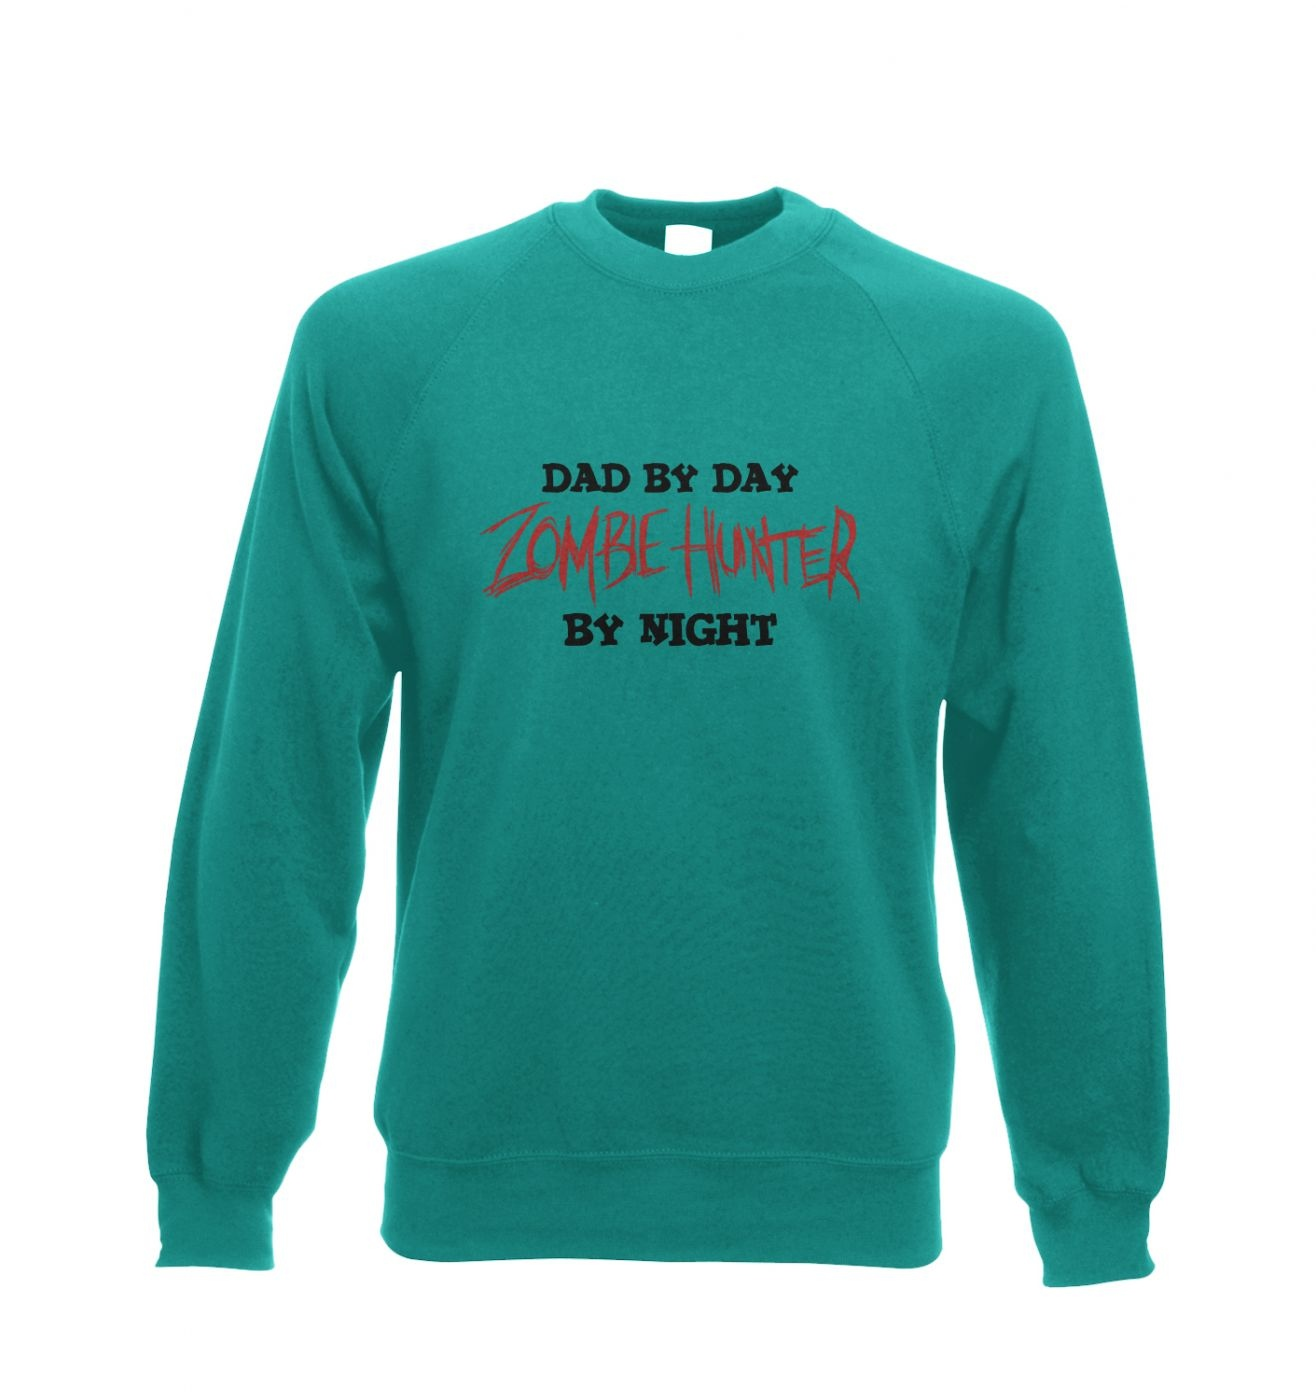 Dad By Day Zombie Hunter By Night crewneck sweatshirt